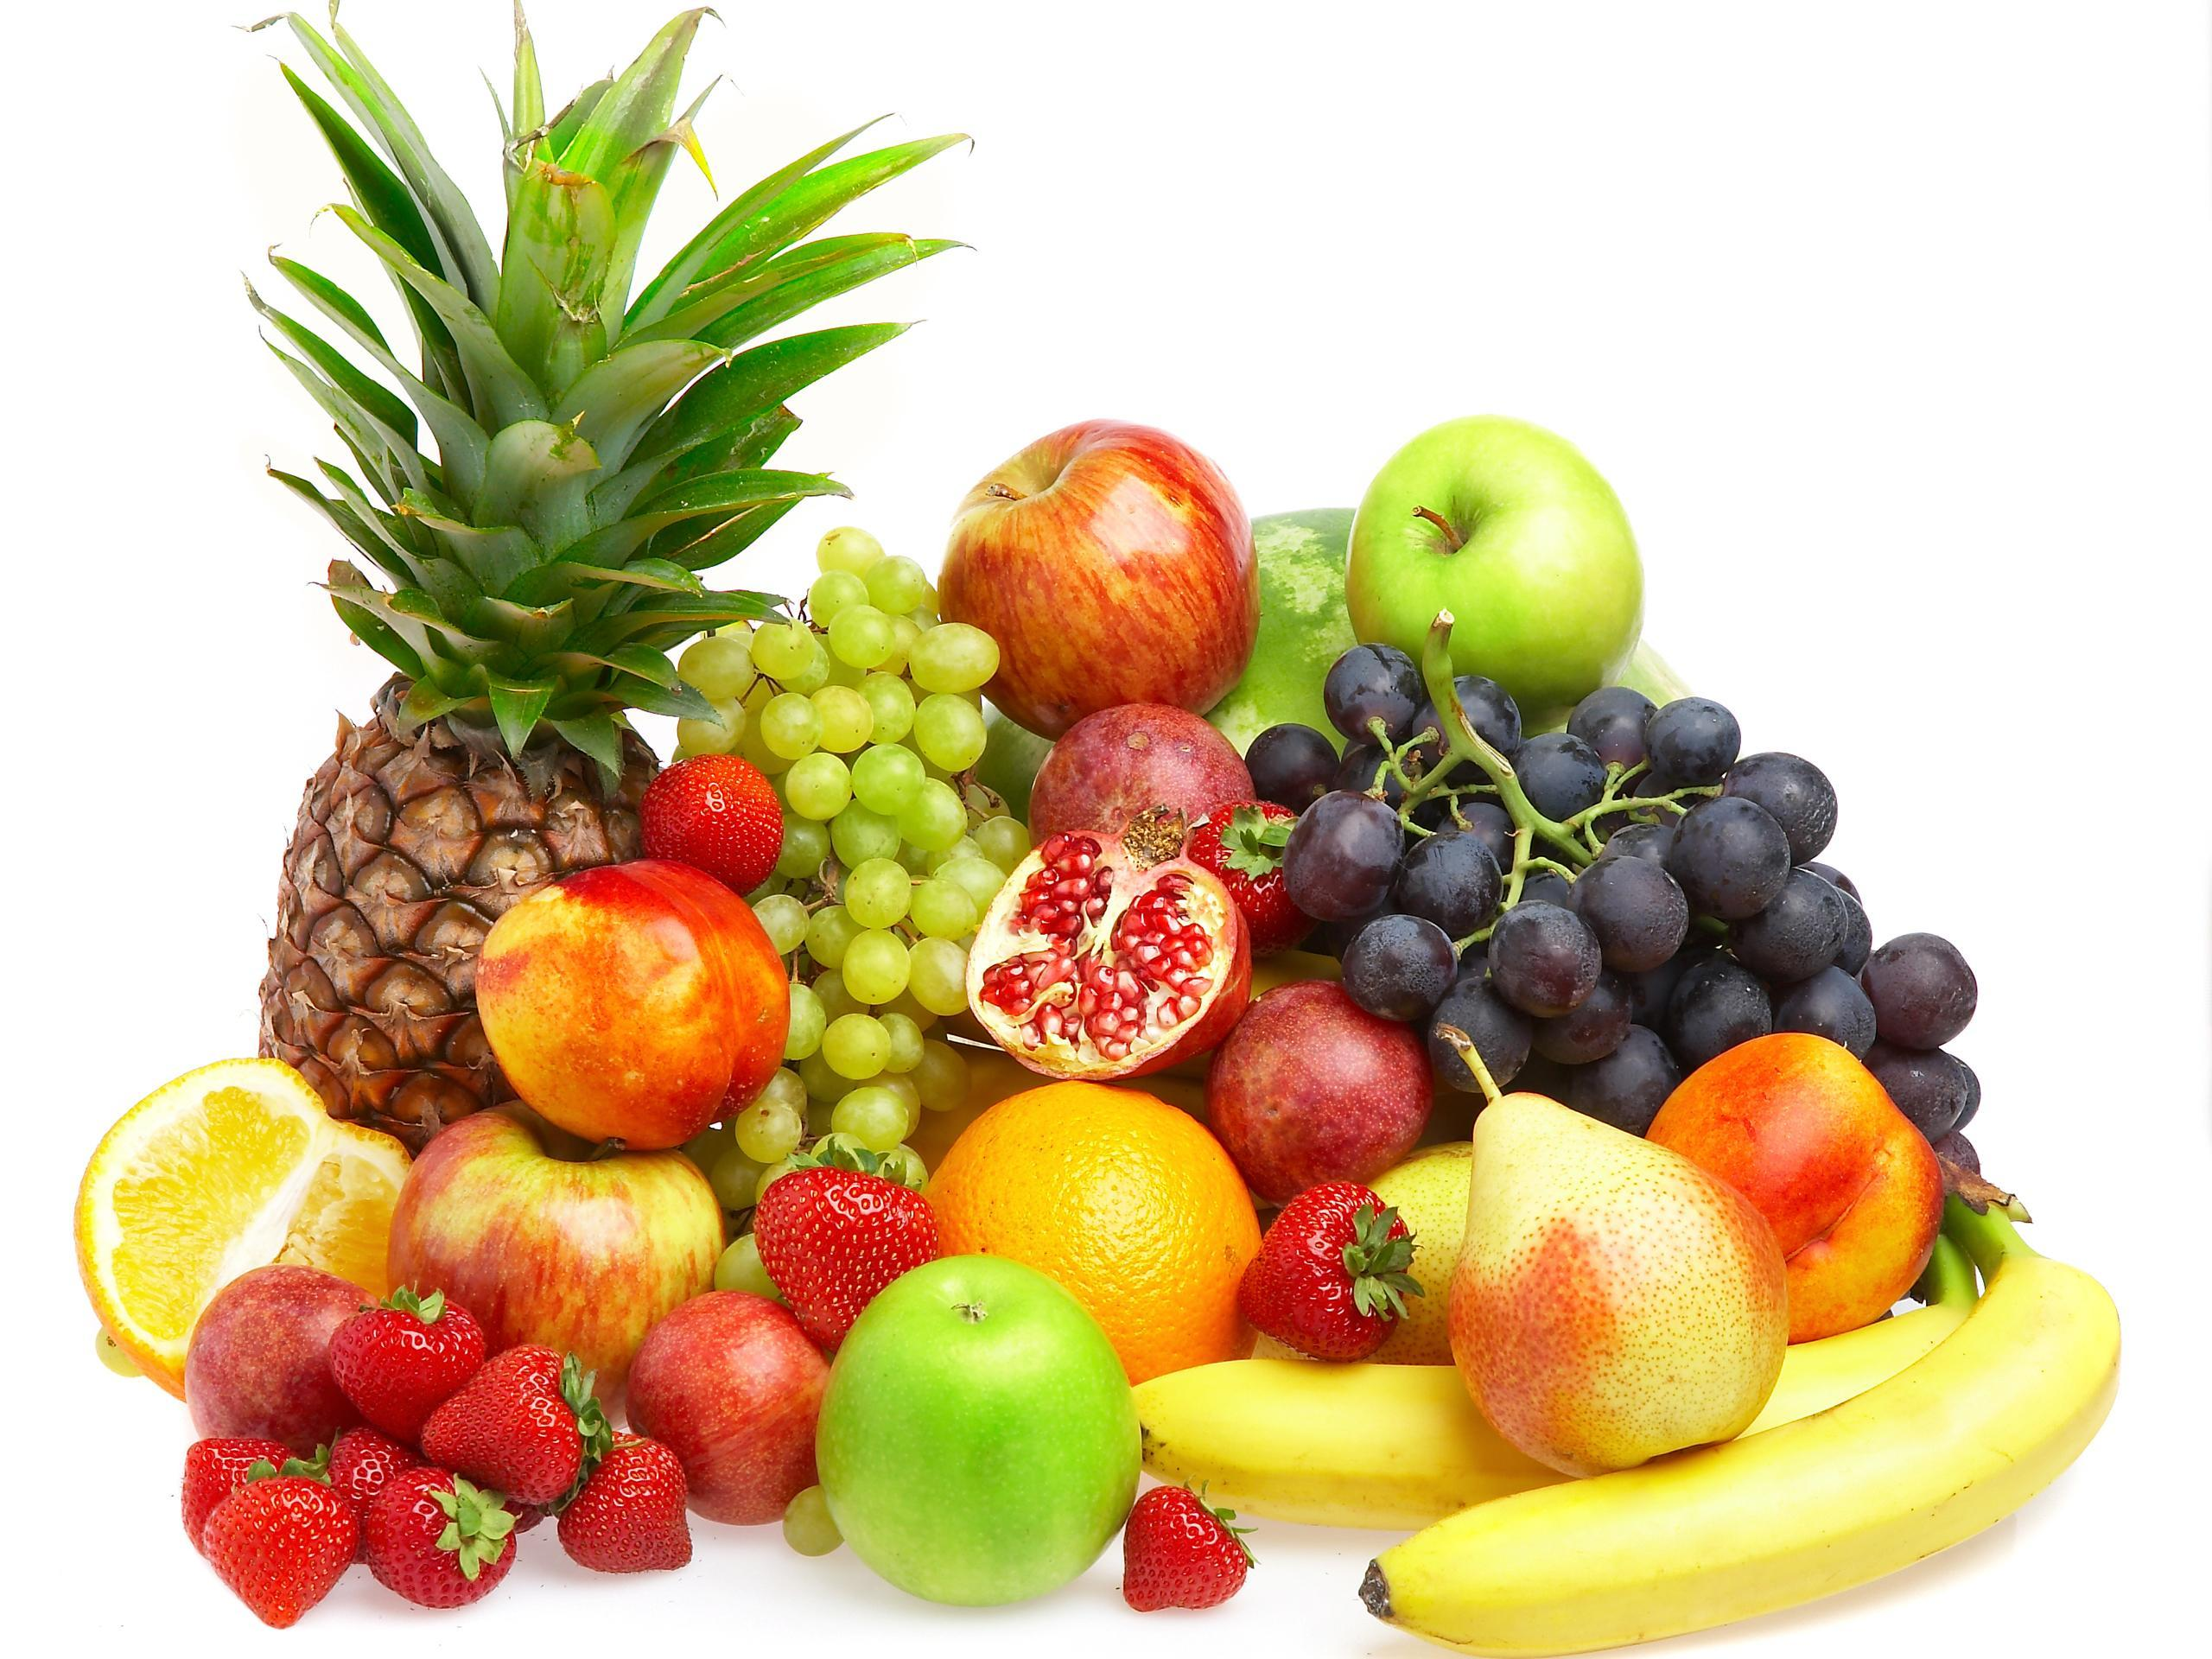 Fruit Wallpaper 2018 Pictures HD Images for Android   APK 2560x1920